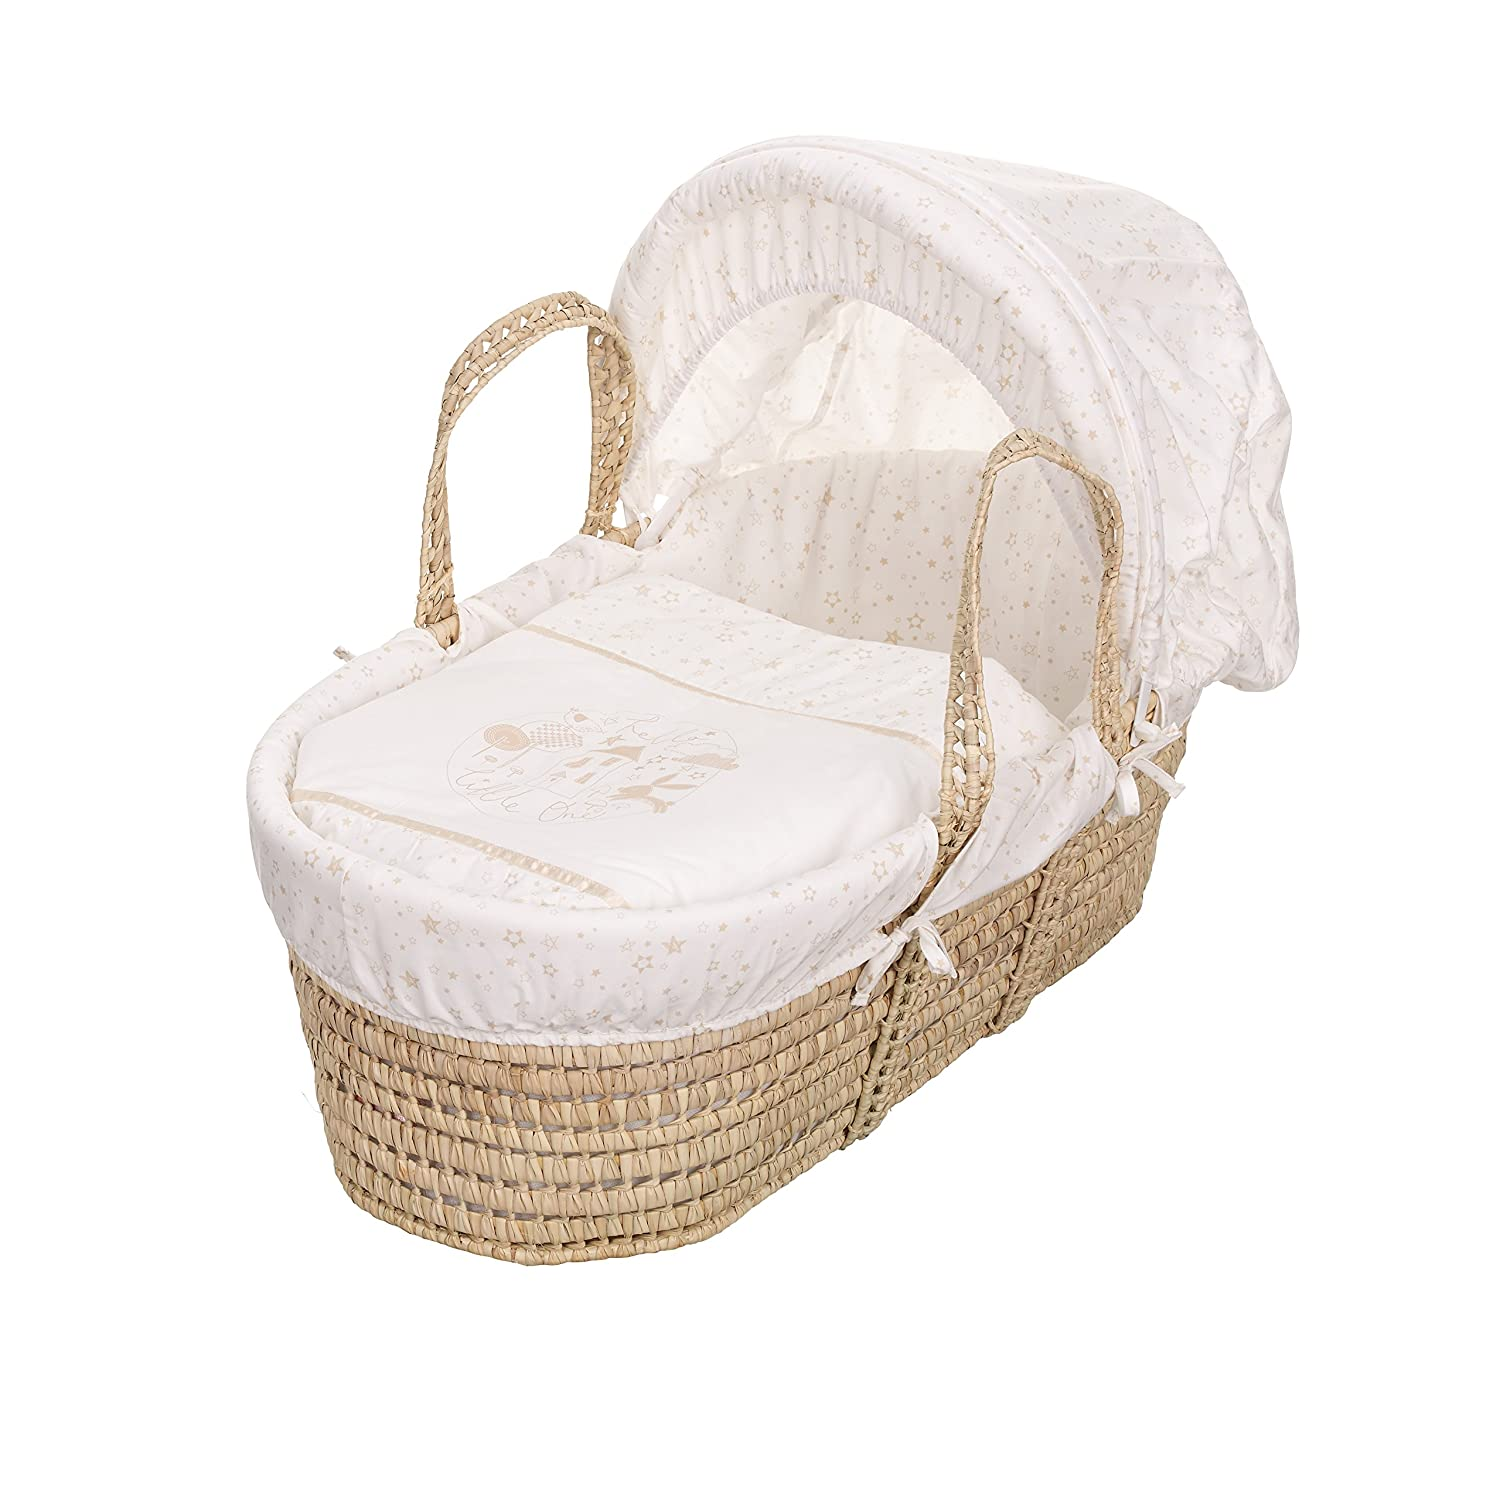 Obaby Hello Little One Moses Basket - Cream 32OB5207